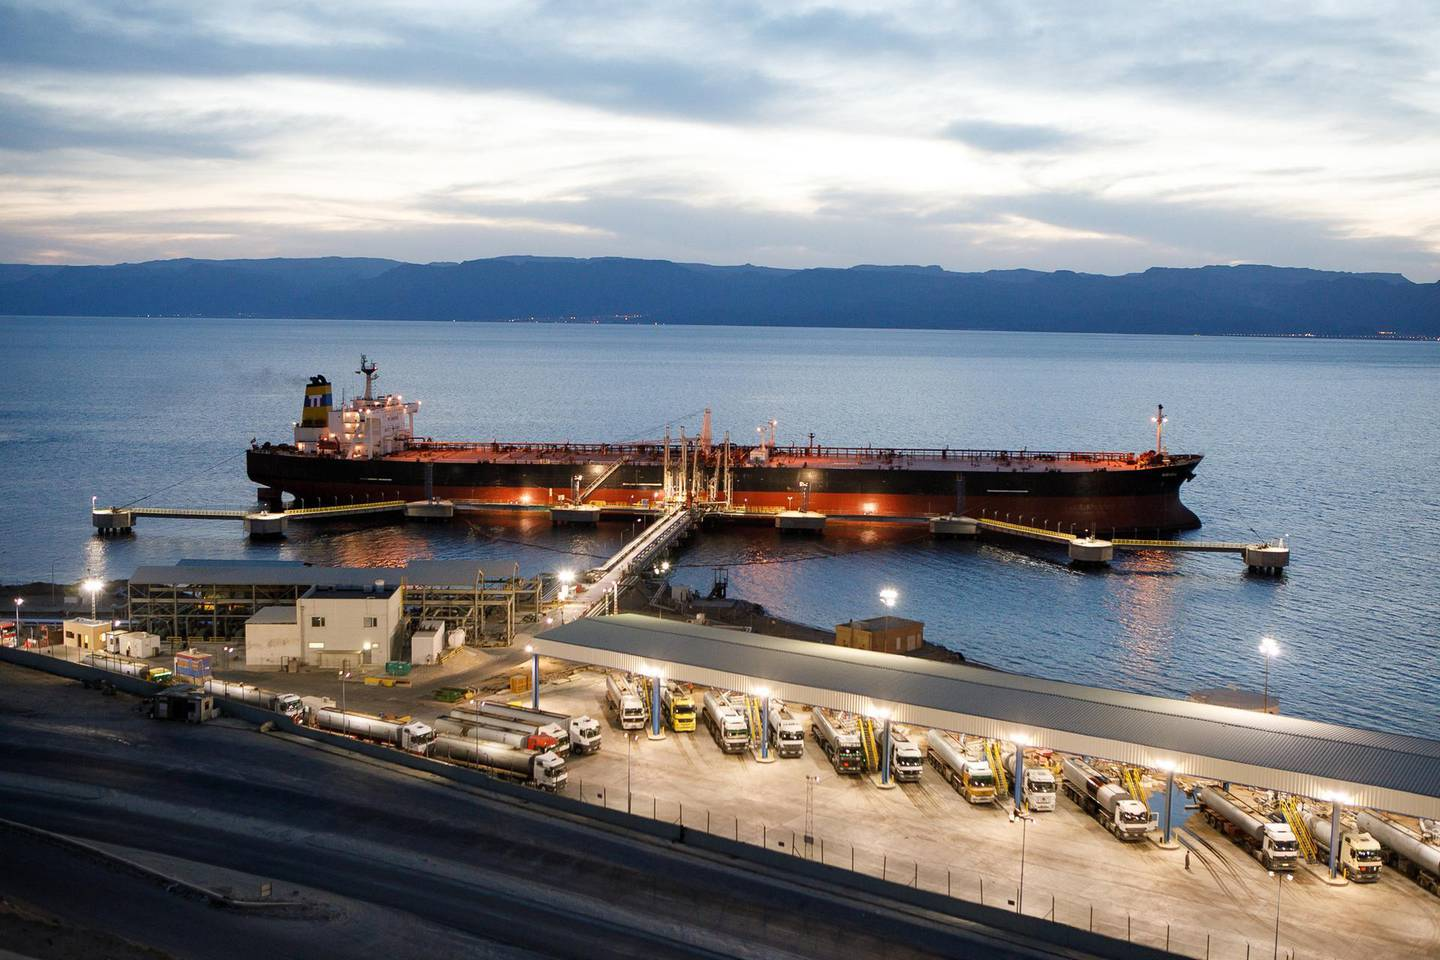 Tanker trucks fill up with crude oil for delivery to the Jordan Petroleum Refinery Co. on the quayside near a crude oil tanker, operated by Navigator Gas LLC, at Aqaba port, operated by Aqaba Development Corp., in Aqaba, Jordan, on Wednesday, April 11, 2018. Both the LNG and the liquefied petroleum gas (LPG) terminals were developed to secure the supply of gas resources after the disruption in Egyptian natural gas imports in 2010. Photographer: Annie Sakkab/Bloomberg